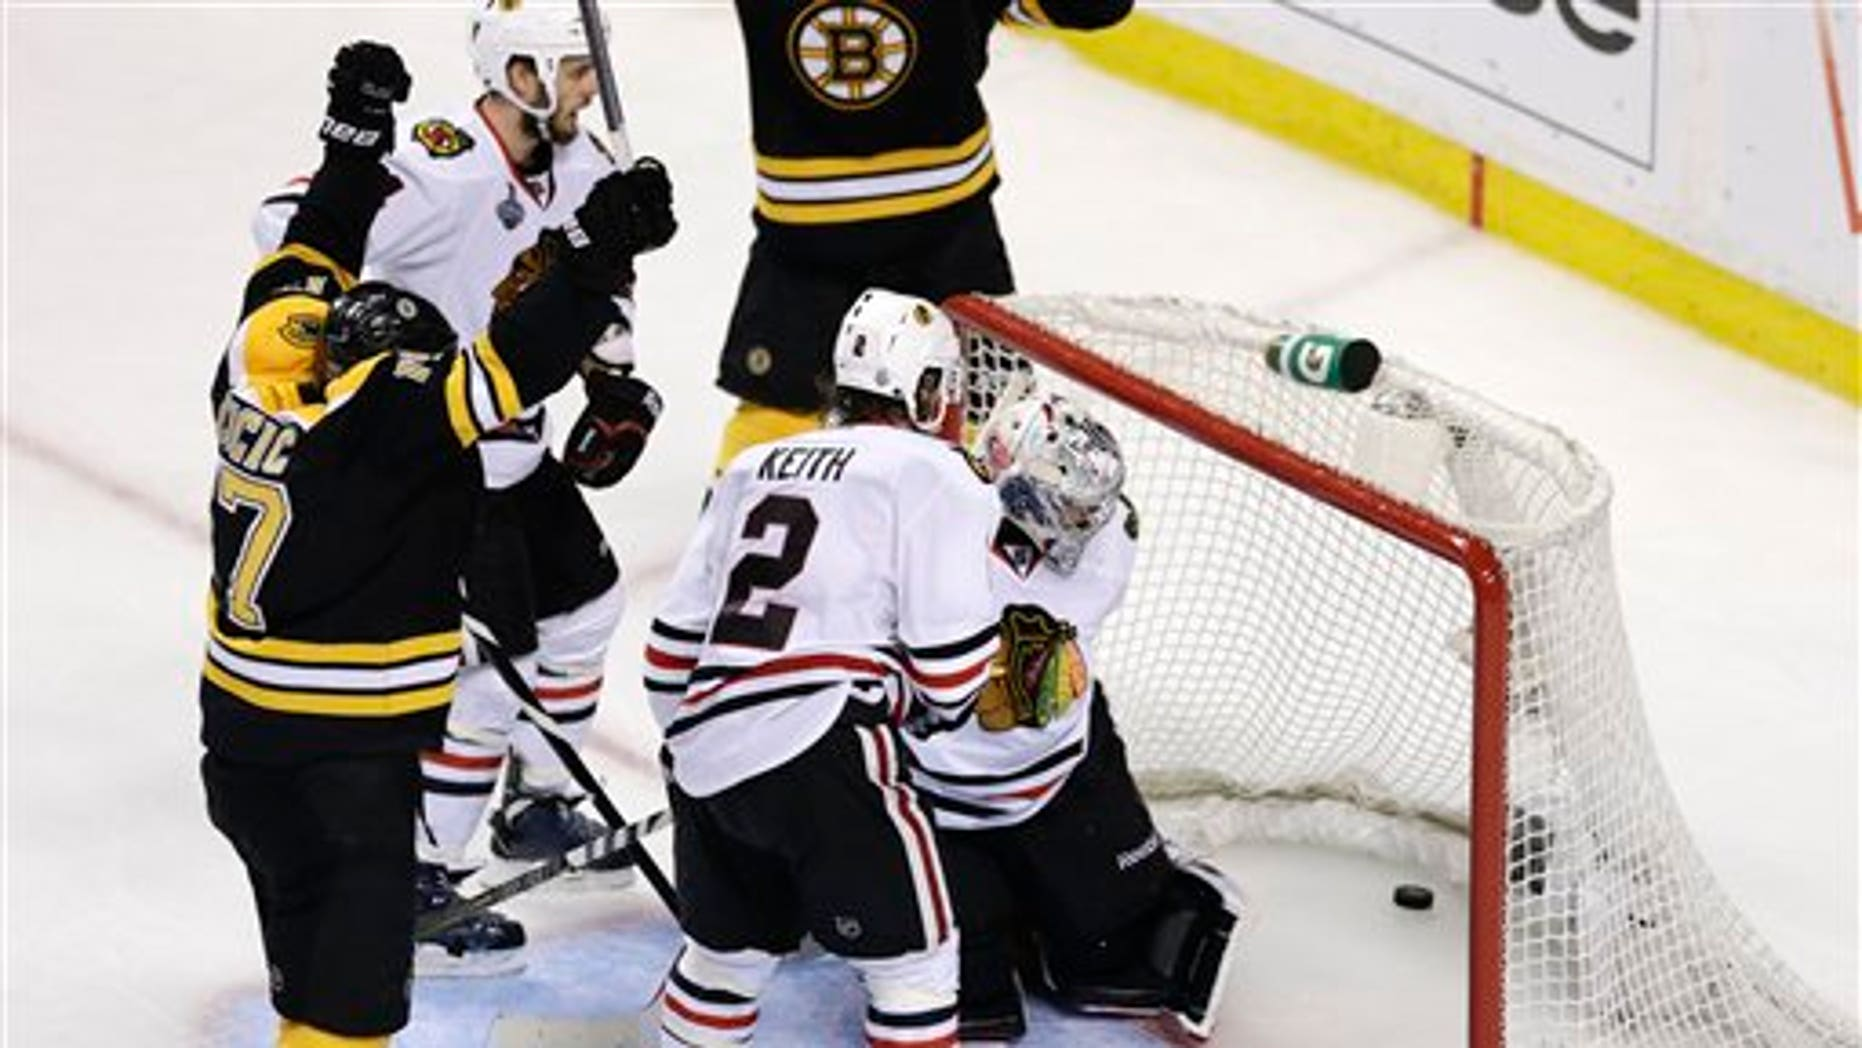 June 24, 2013: Boston Bruins left wing Milan Lucic, left, reacts after scoring past Chicago Blackhawks defenseman Duncan Keith (2) and goalie Corey Crawford, hidden during the third period in Game 6 of the NHL hockey Stanley Cup Finals.